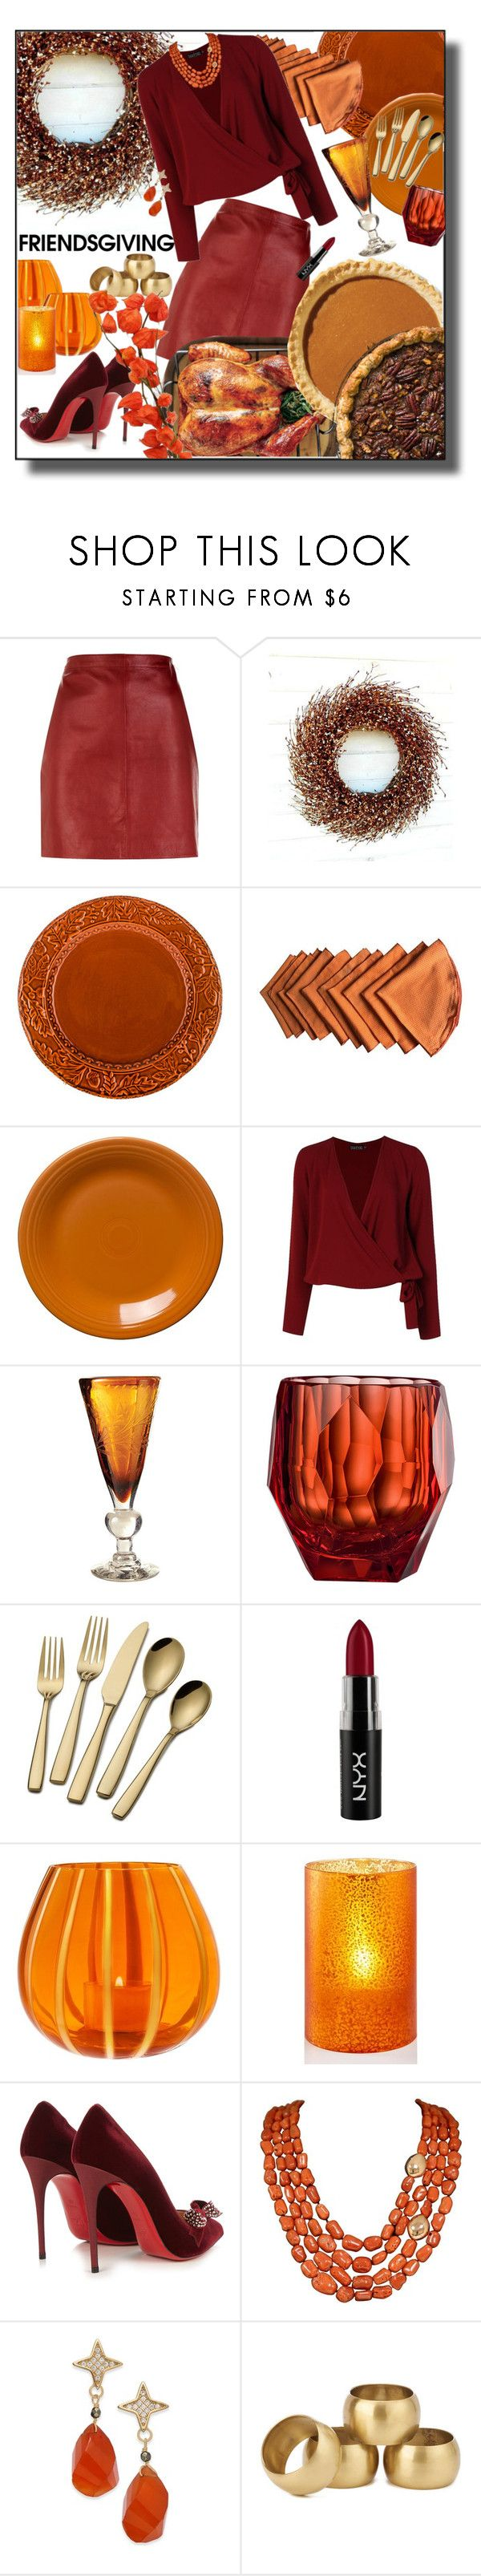 """Friendsgiving"" by marionmeyer ❤ liked on Polyvore featuring Sandro, Boohoo, Jan Barboglio, Mario Luca Giusti, NYX, The Merchant Of Venice, Holiday Lane, Christian Louboutin, Paul & Pitü Naturally and NKUKU"